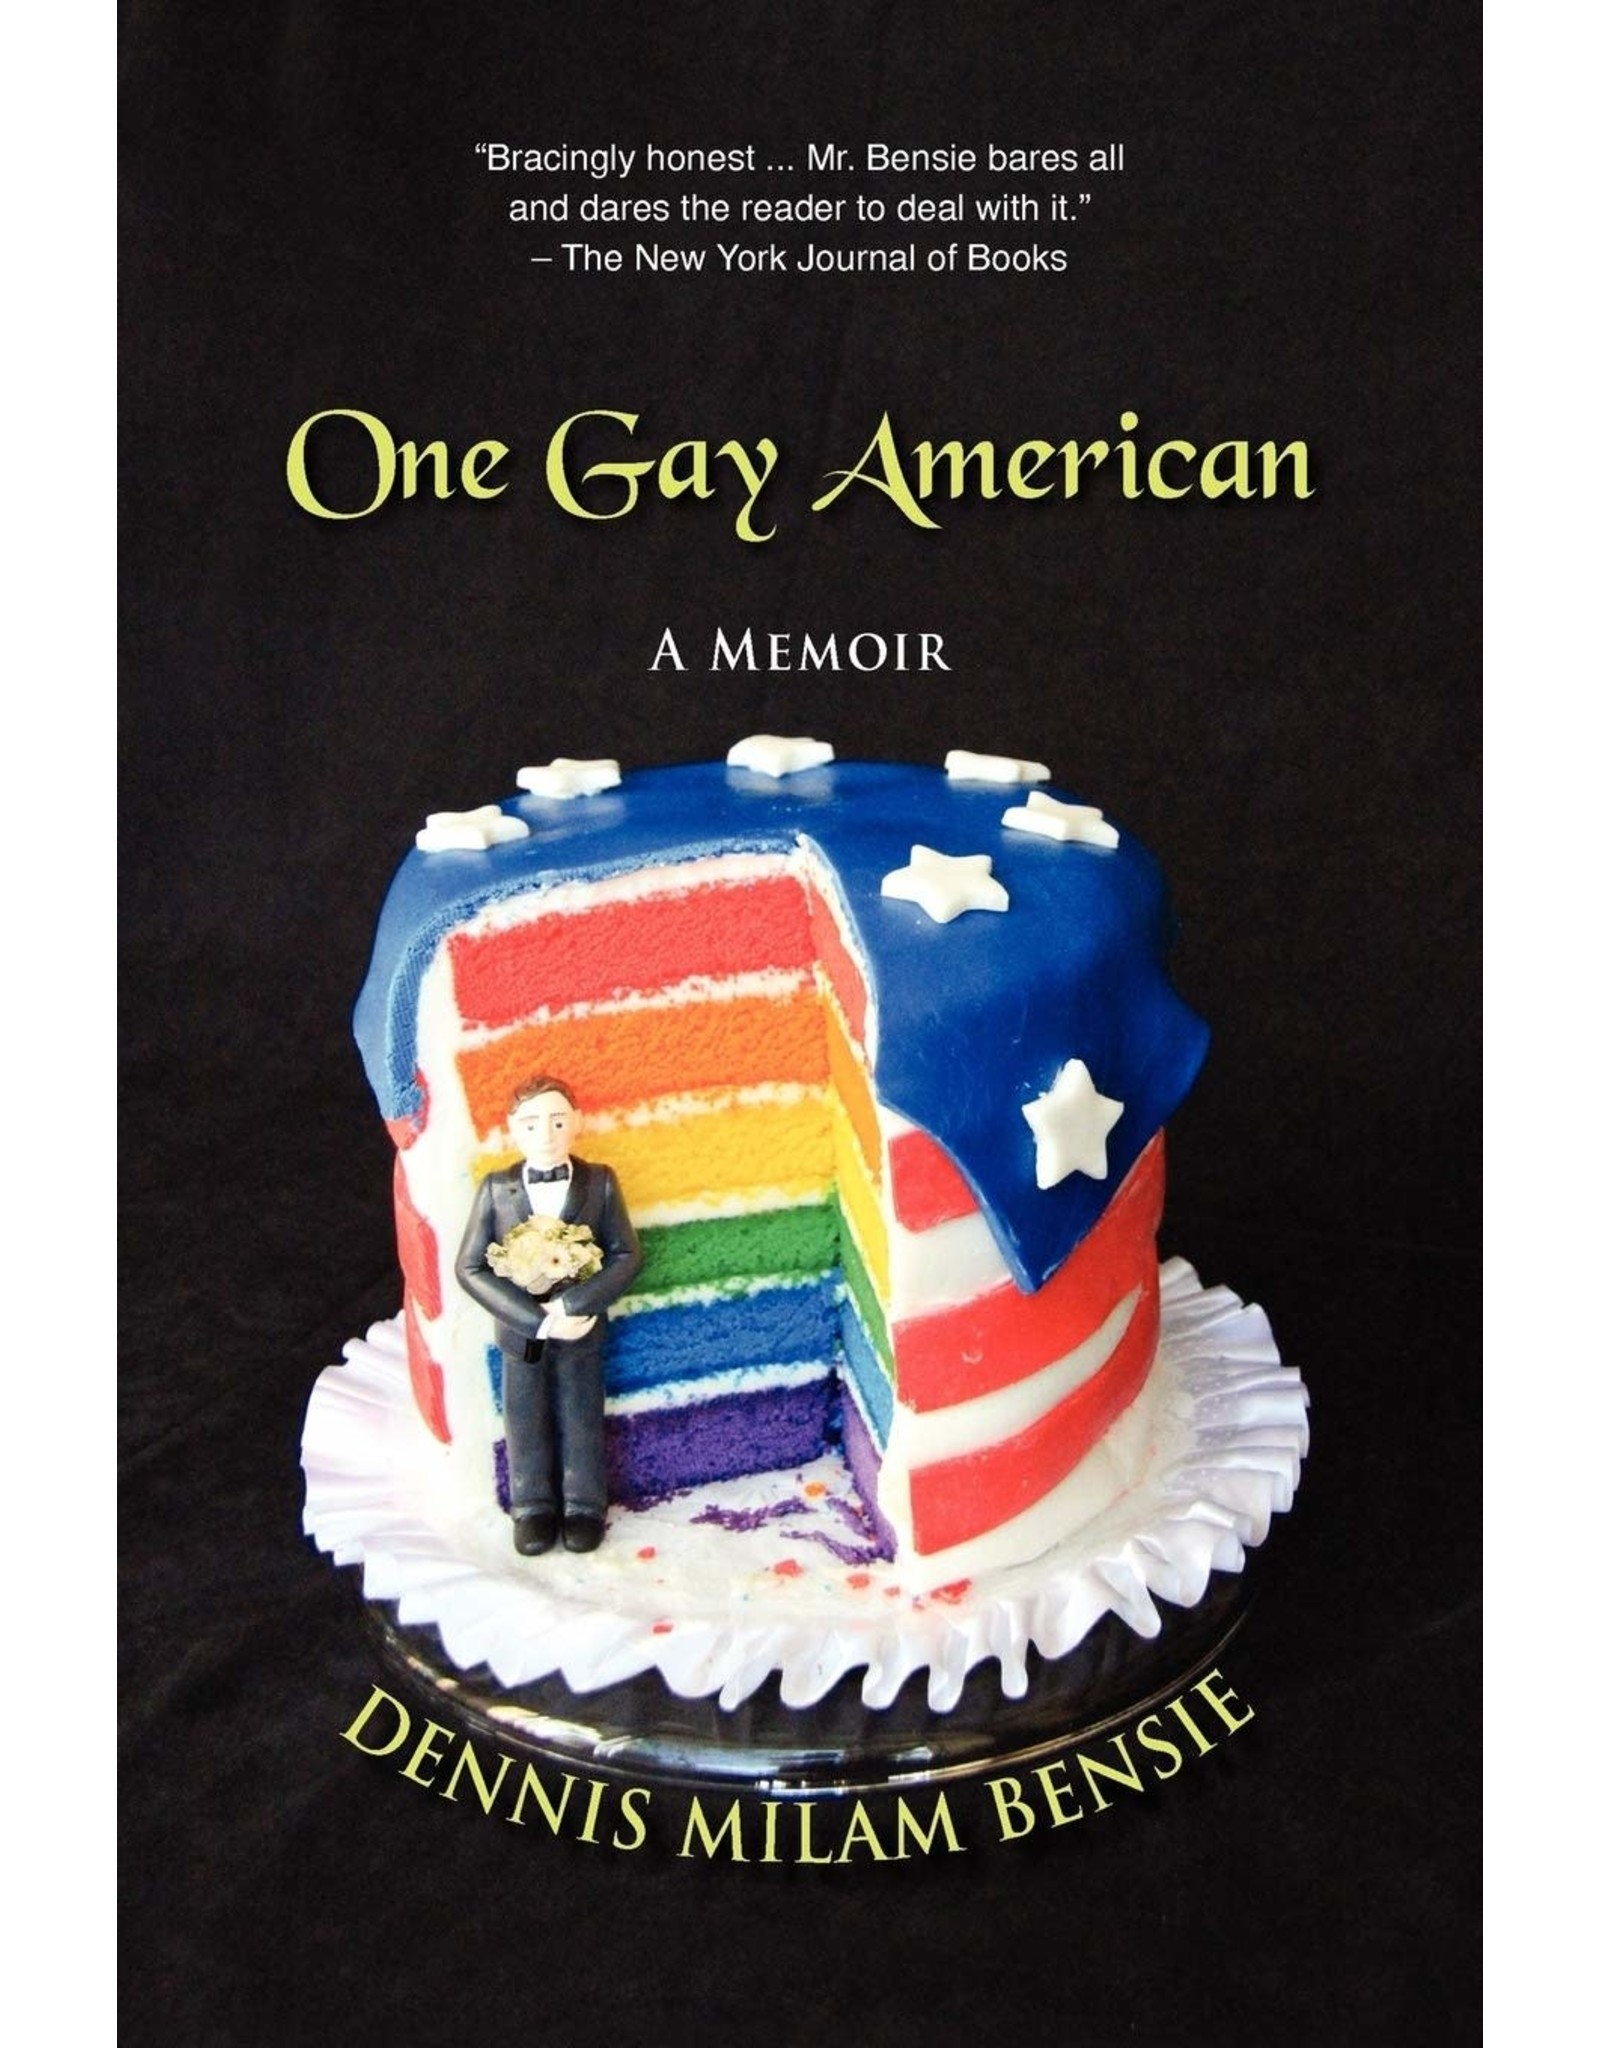 Independent Independent Brand One Gay American: A memoir By Dennis Milam Bensie